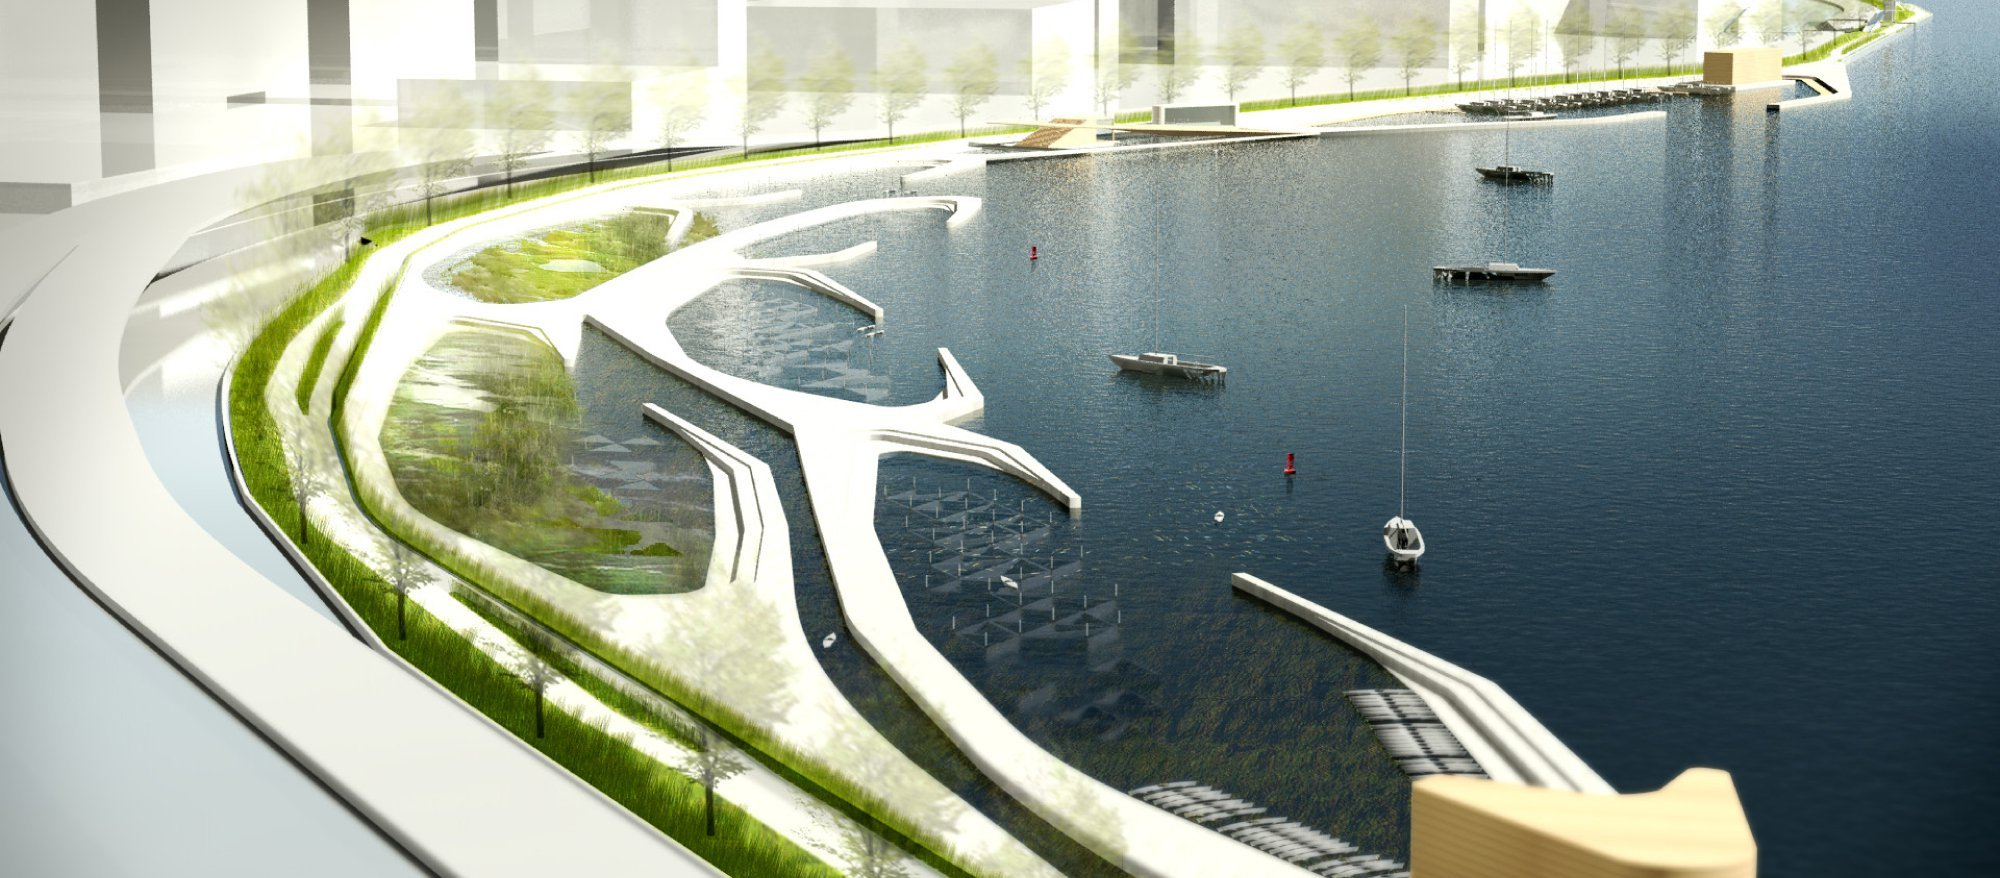 Gallery Of Reimagining The Waterfront Ideas Competition 2